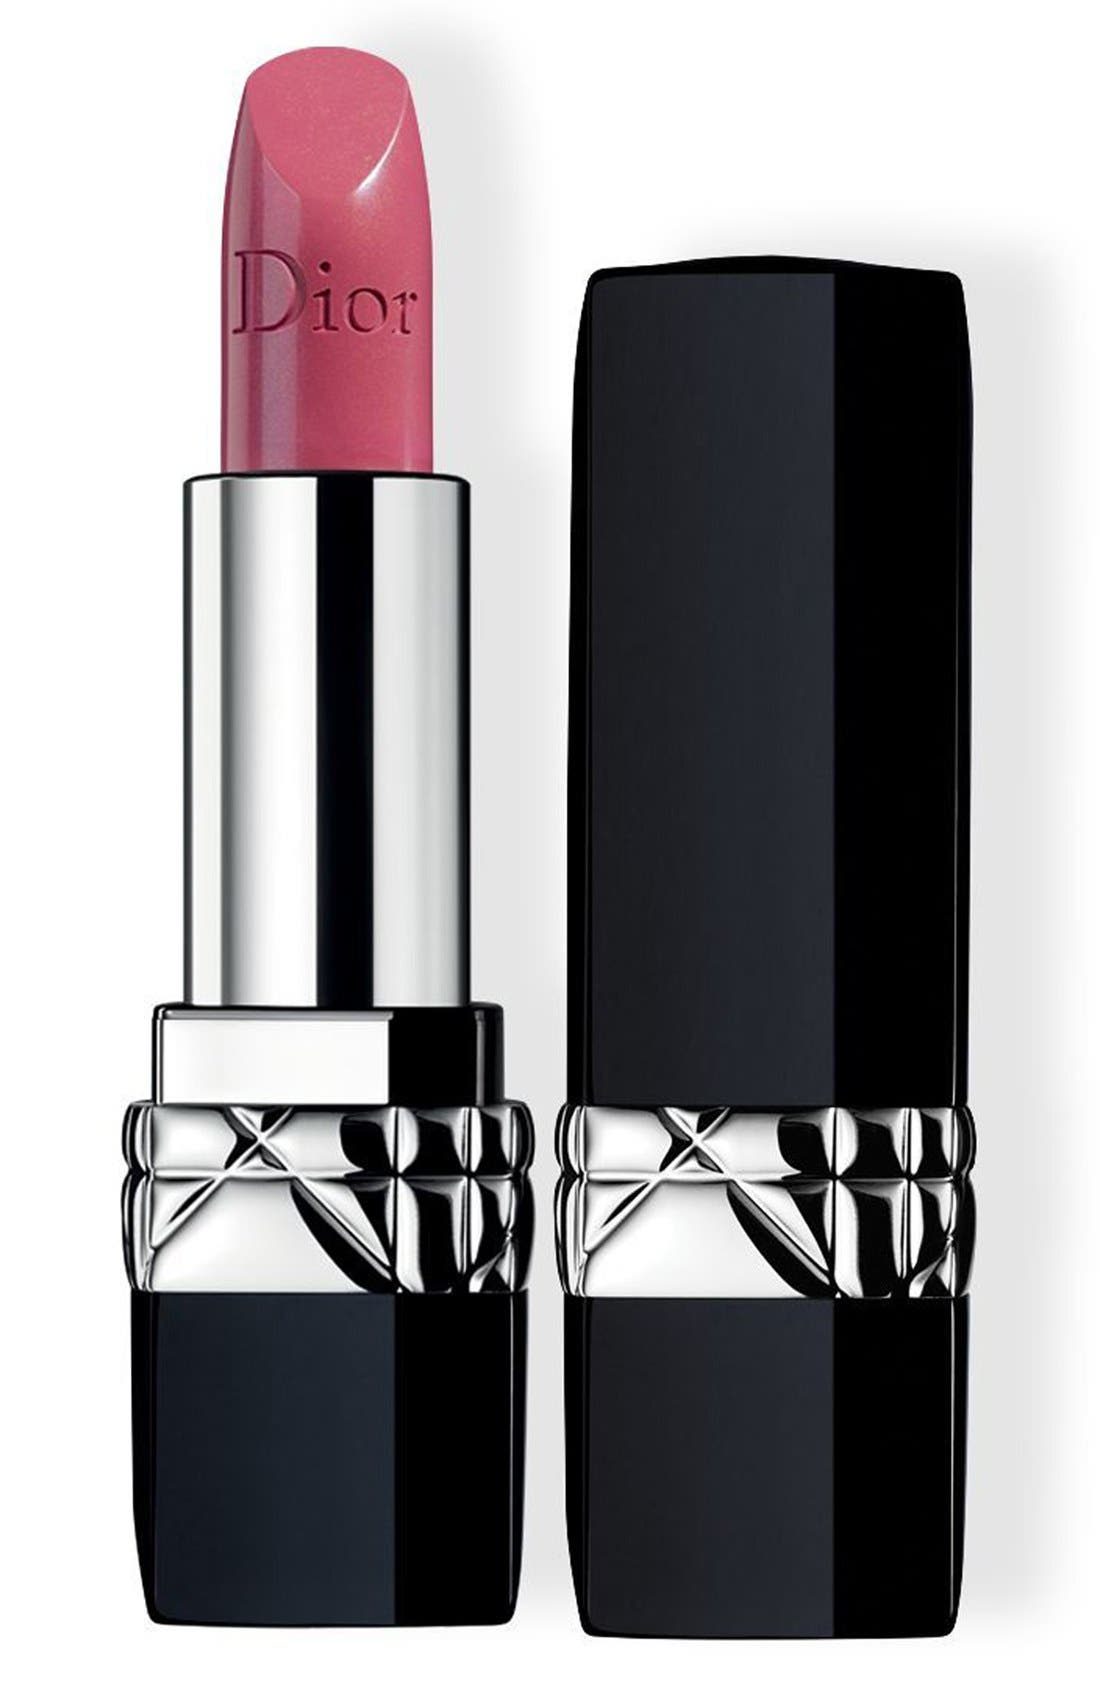 Dior Couture Color Rouge Dior Lipstick - 060 Premiere